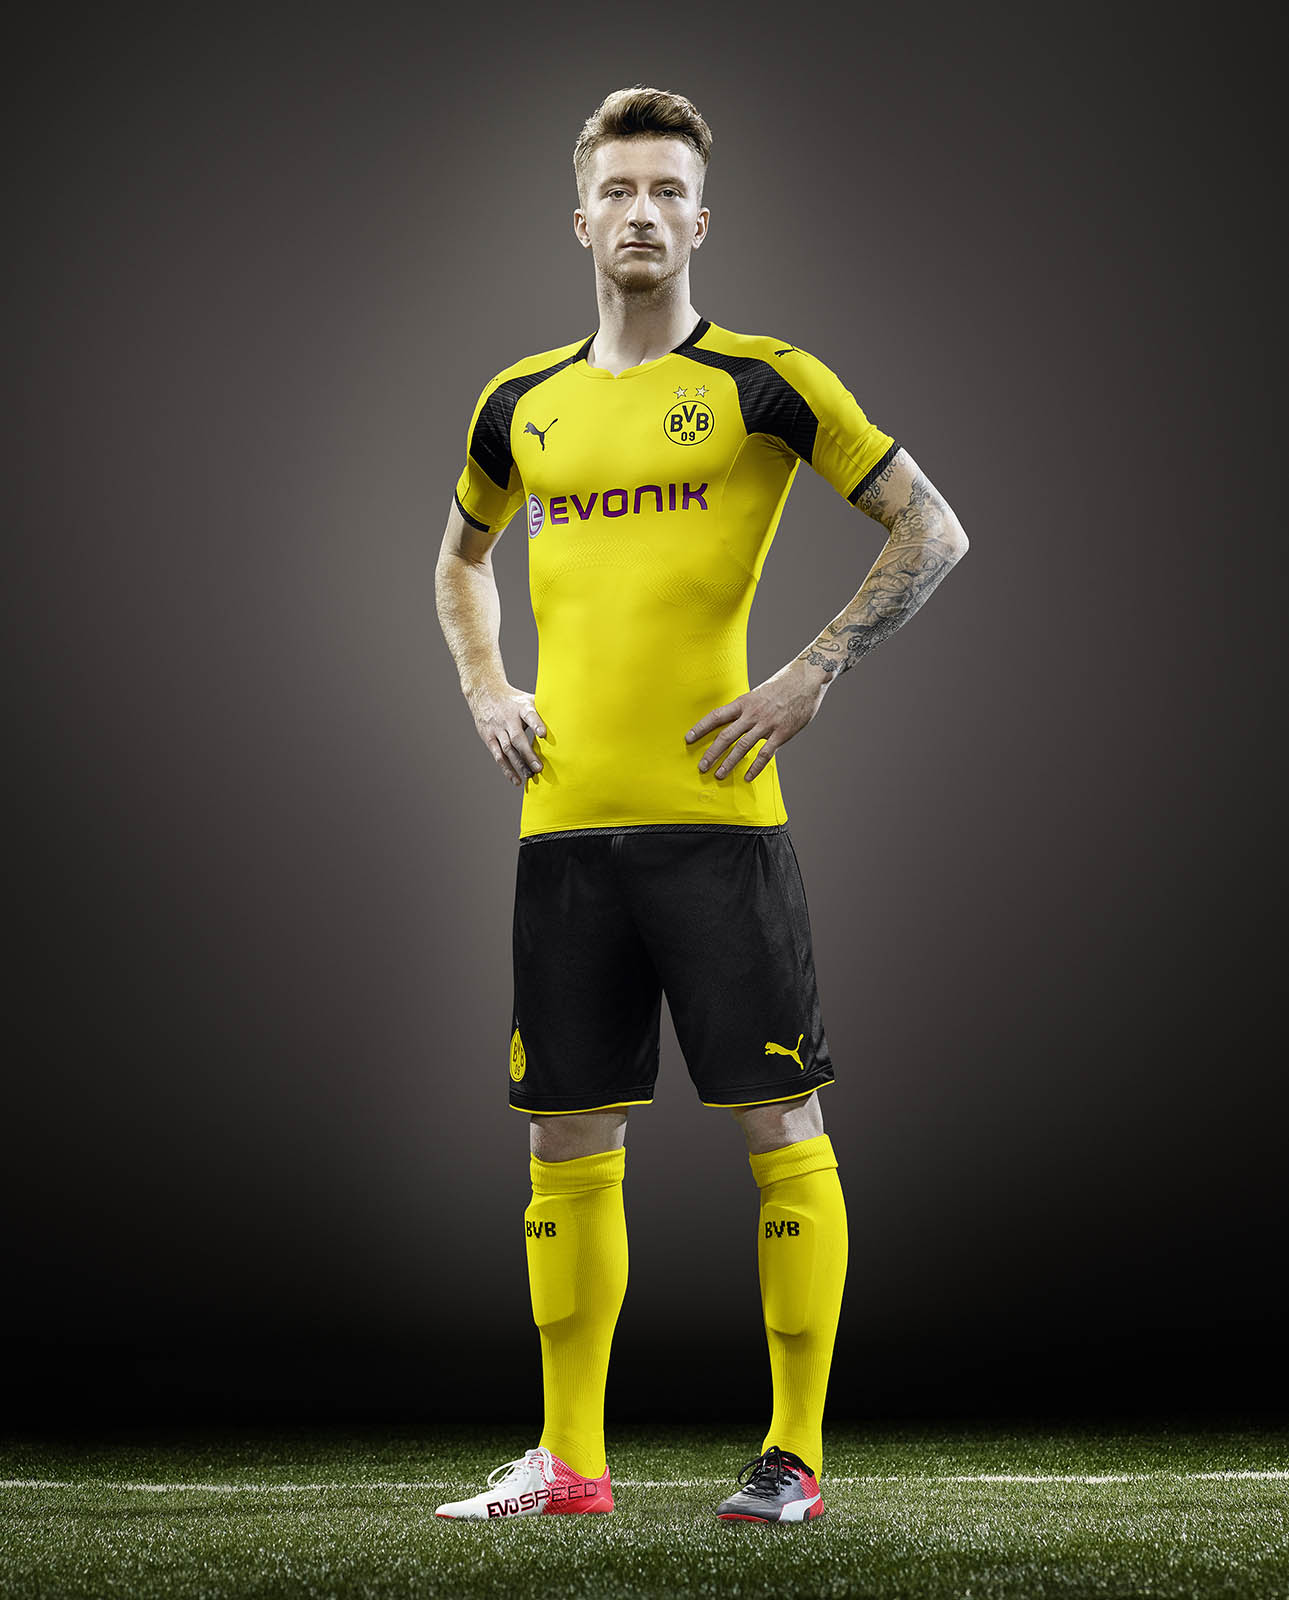 borussia dortmund 1617 champions league kit released